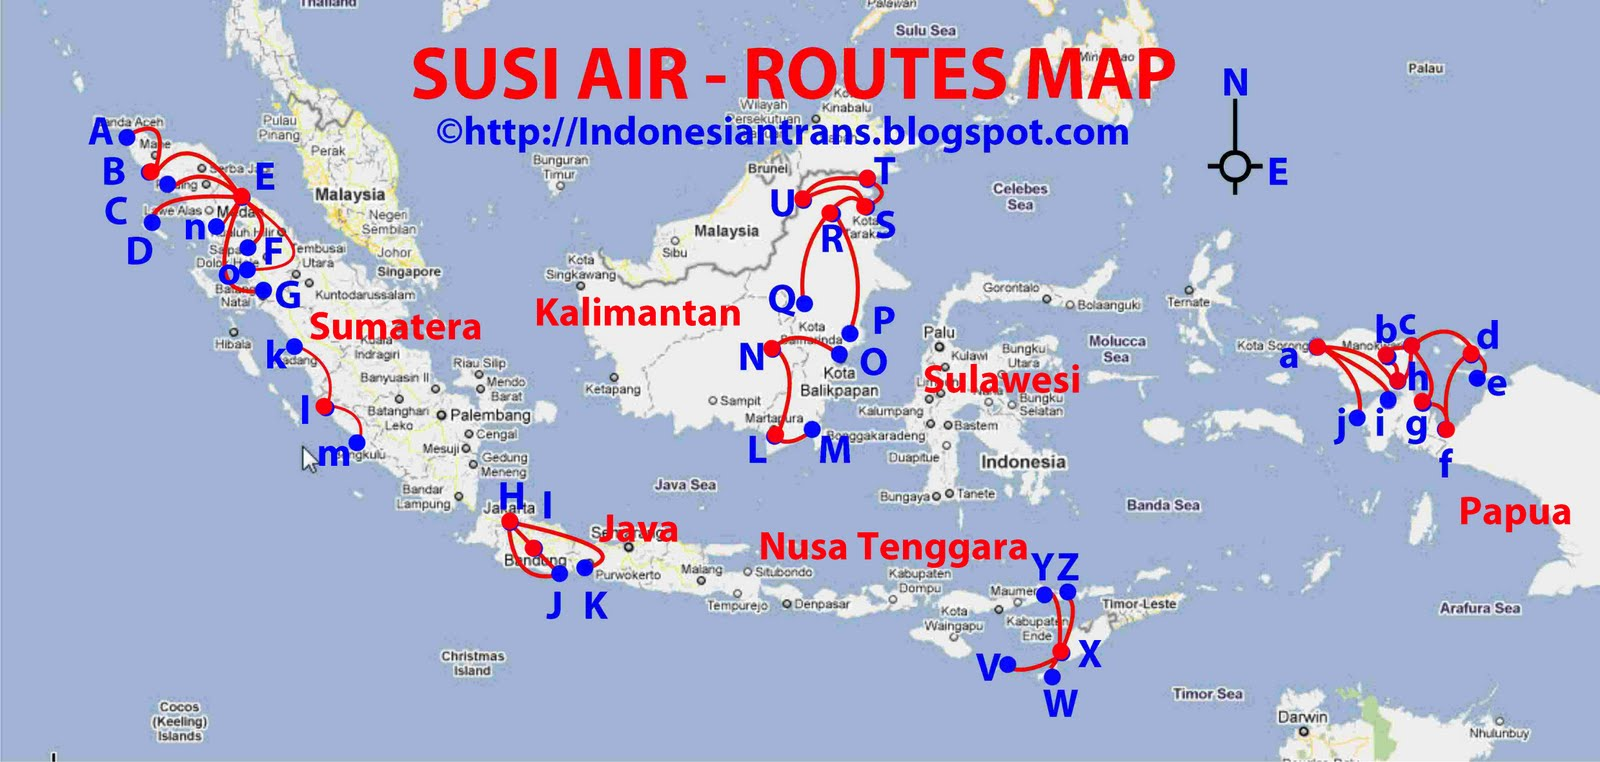 routes map: Susi Air routes map